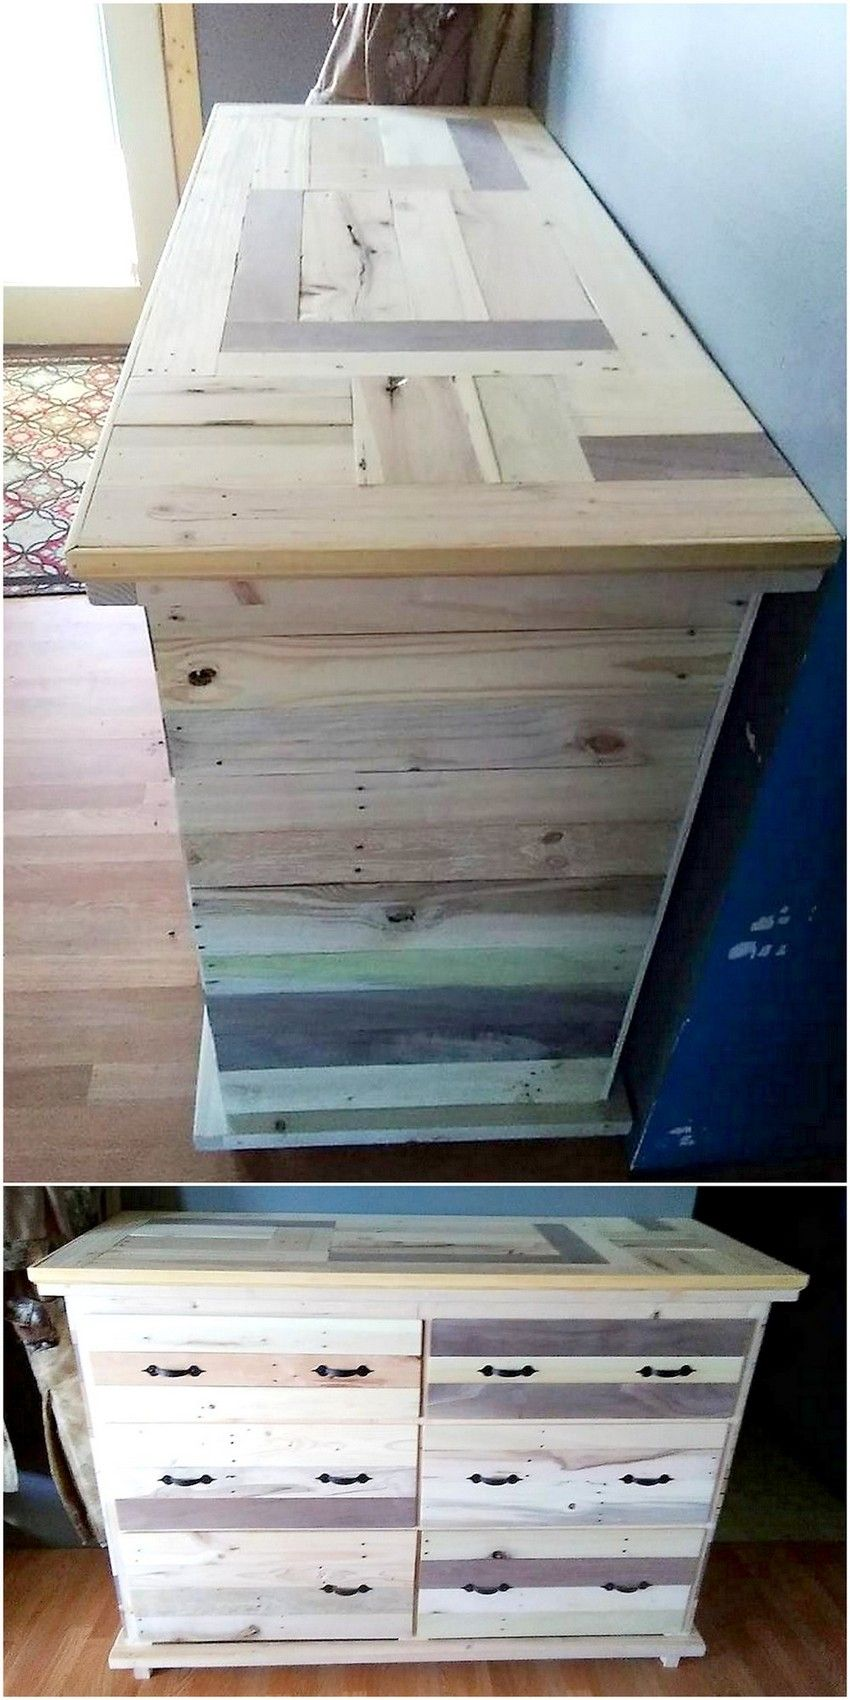 Creative Recycling Ideas For Used Wooden Pallets Easy Pallet Projects And Diy Wood Pallets Ideas Wooden Pallets Wood Pallets Pallet Dresser